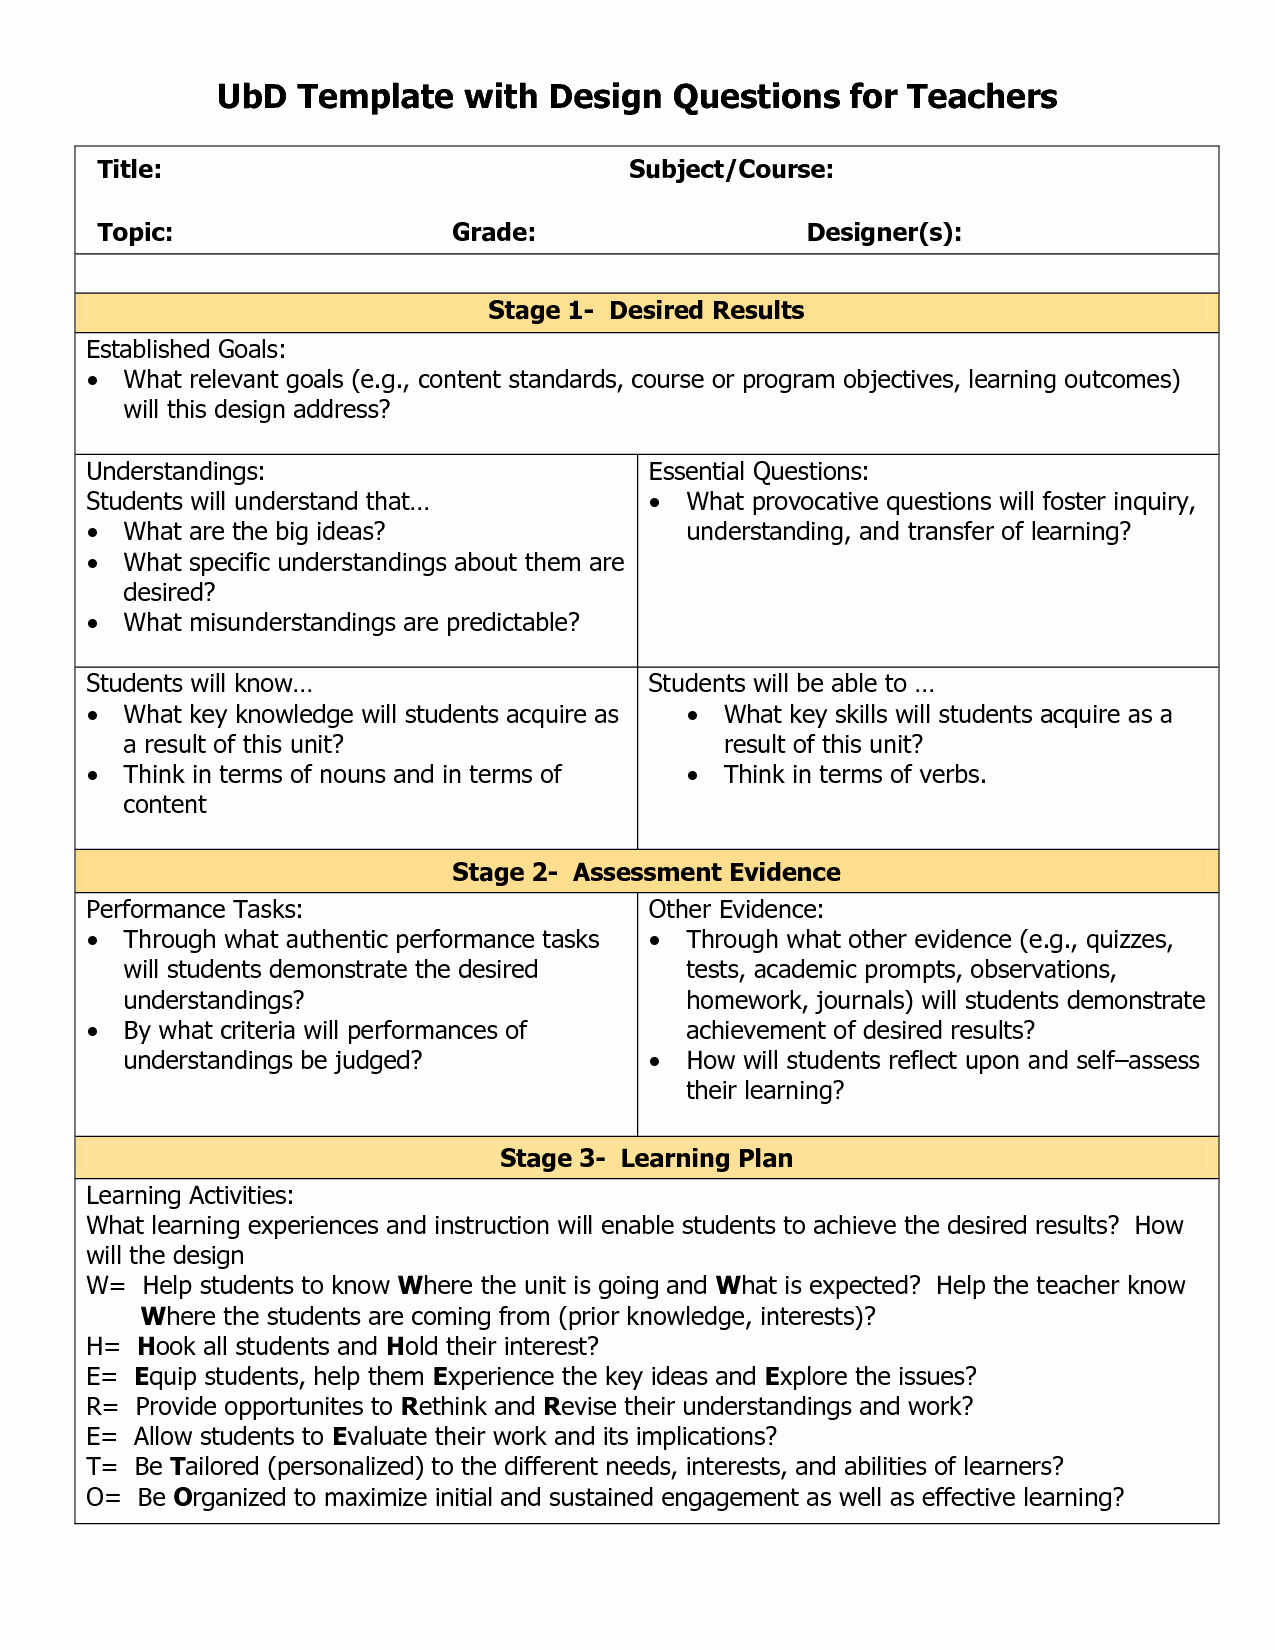 Texas Lesson Plans Template Inspirational Blank Ubd Template